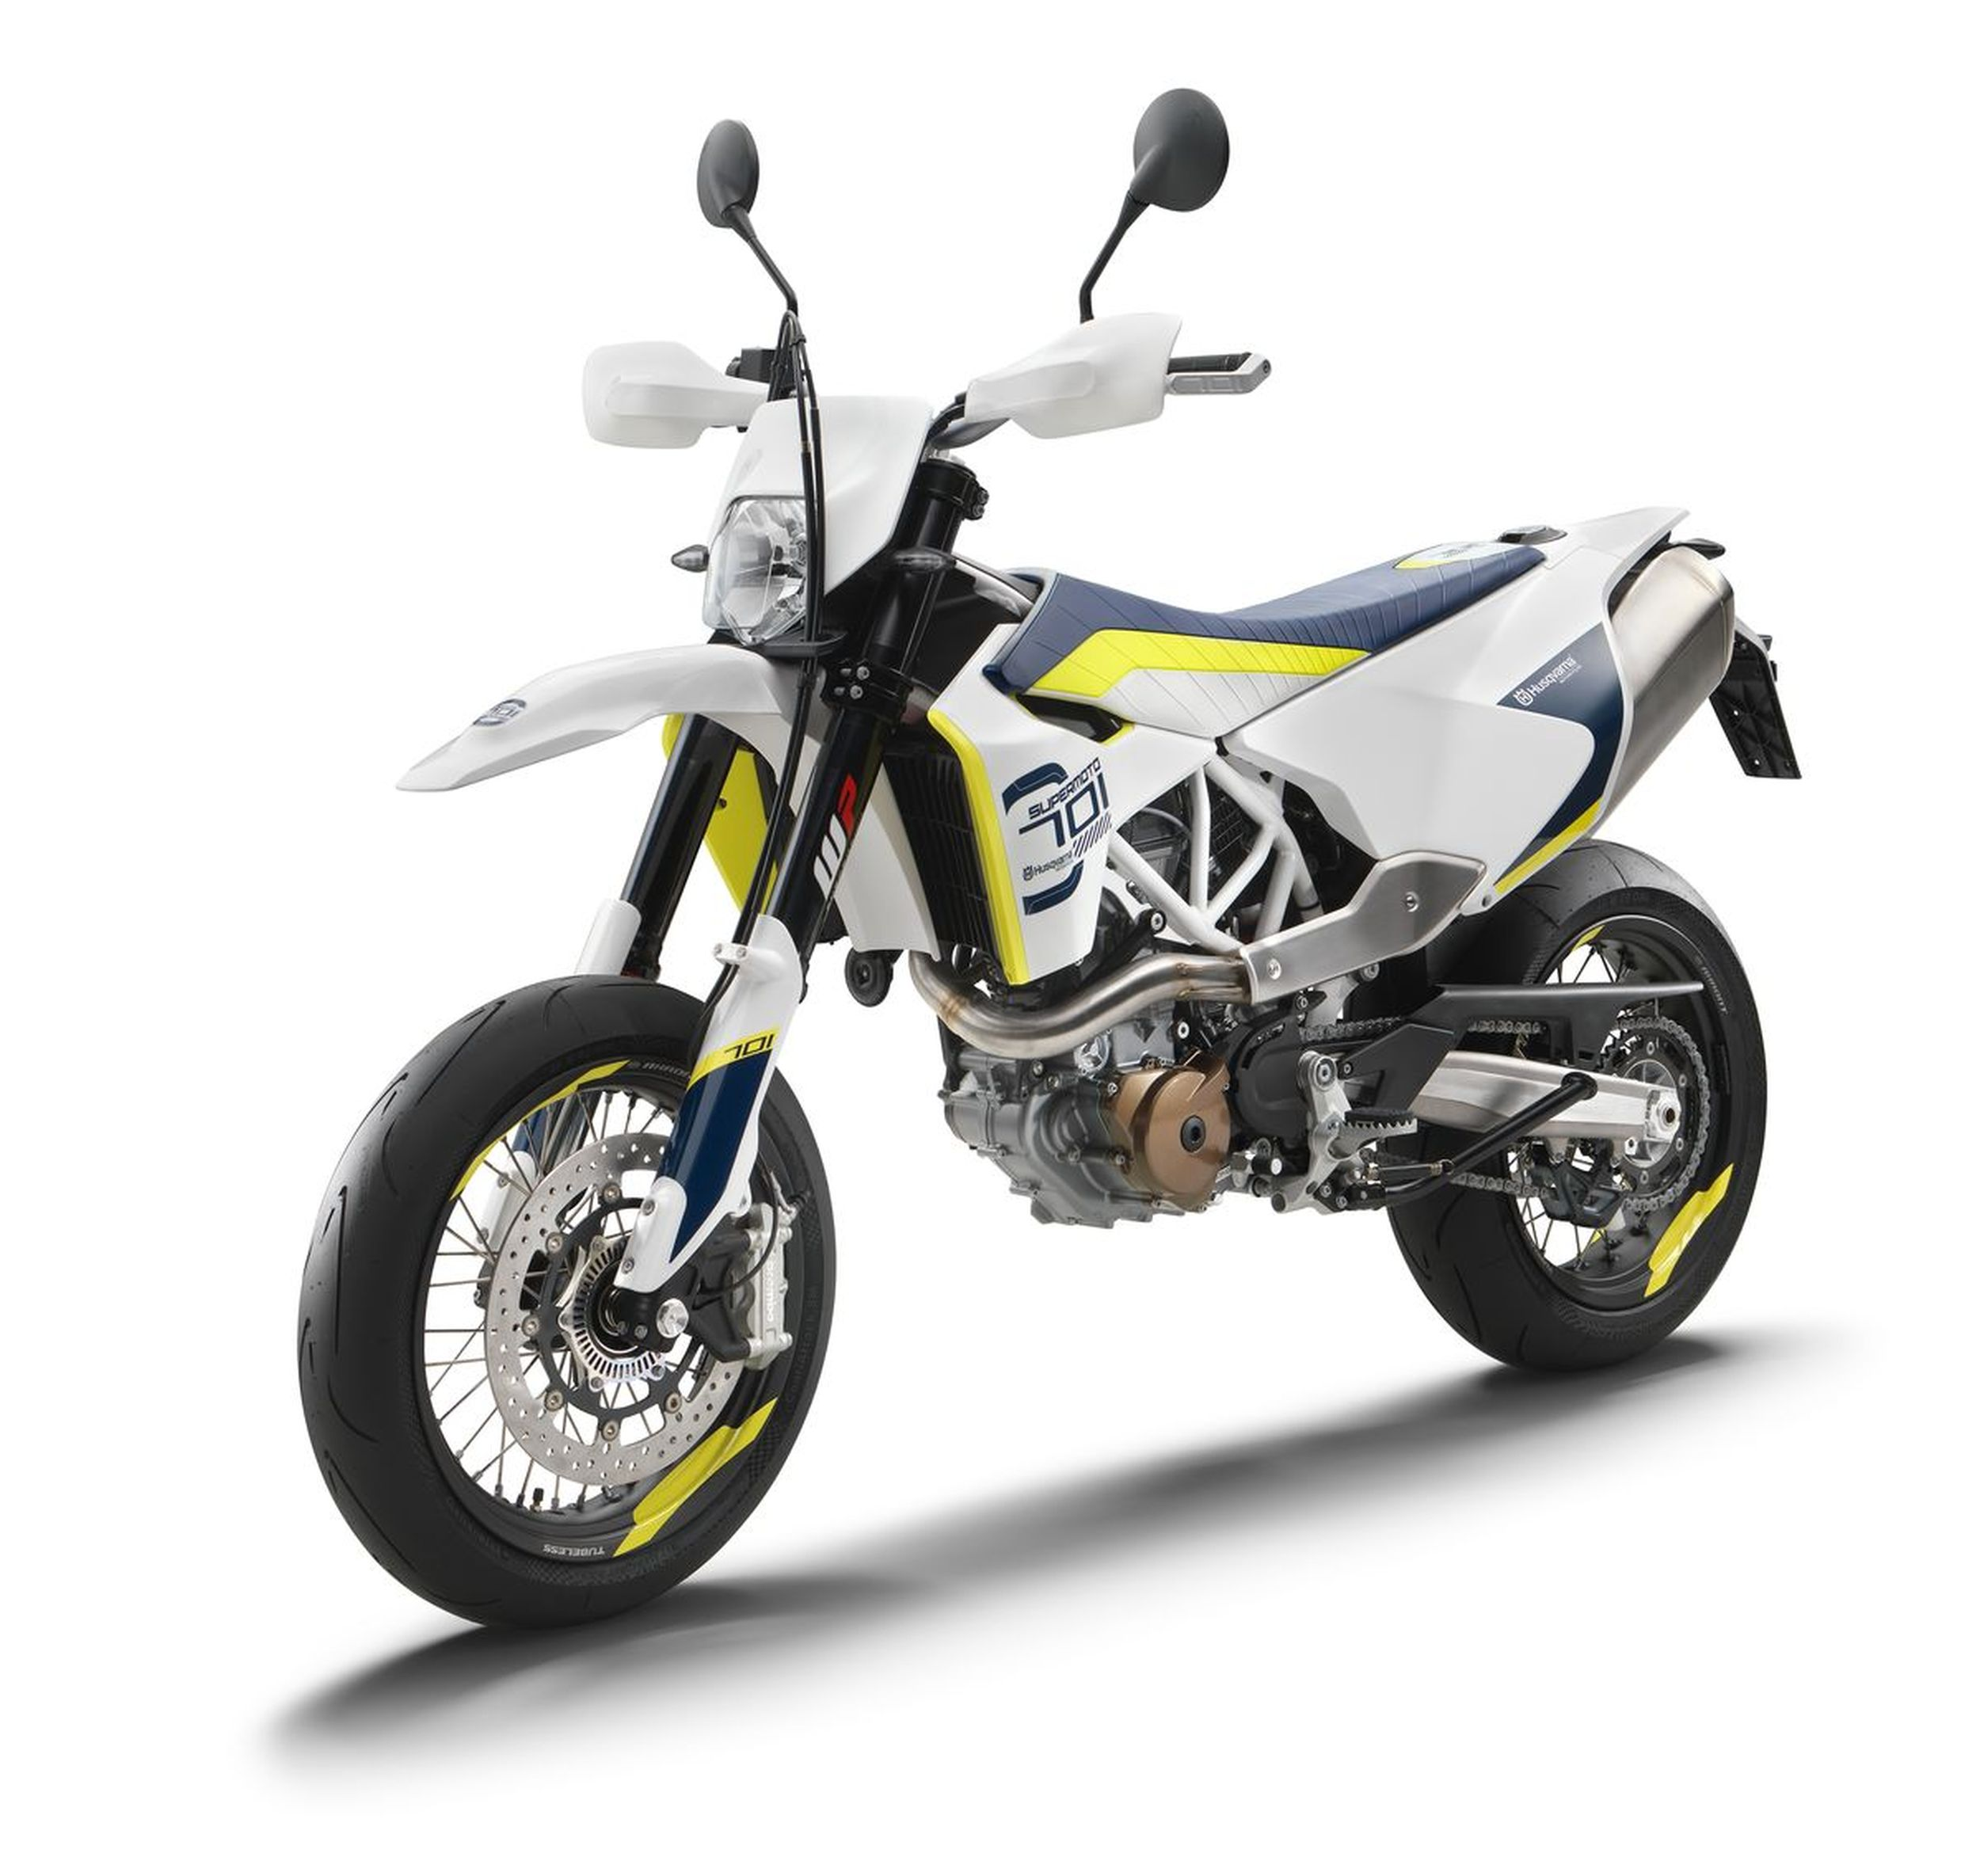 gebrauchte und neue husqvarna 701 supermoto motorr der kaufen. Black Bedroom Furniture Sets. Home Design Ideas